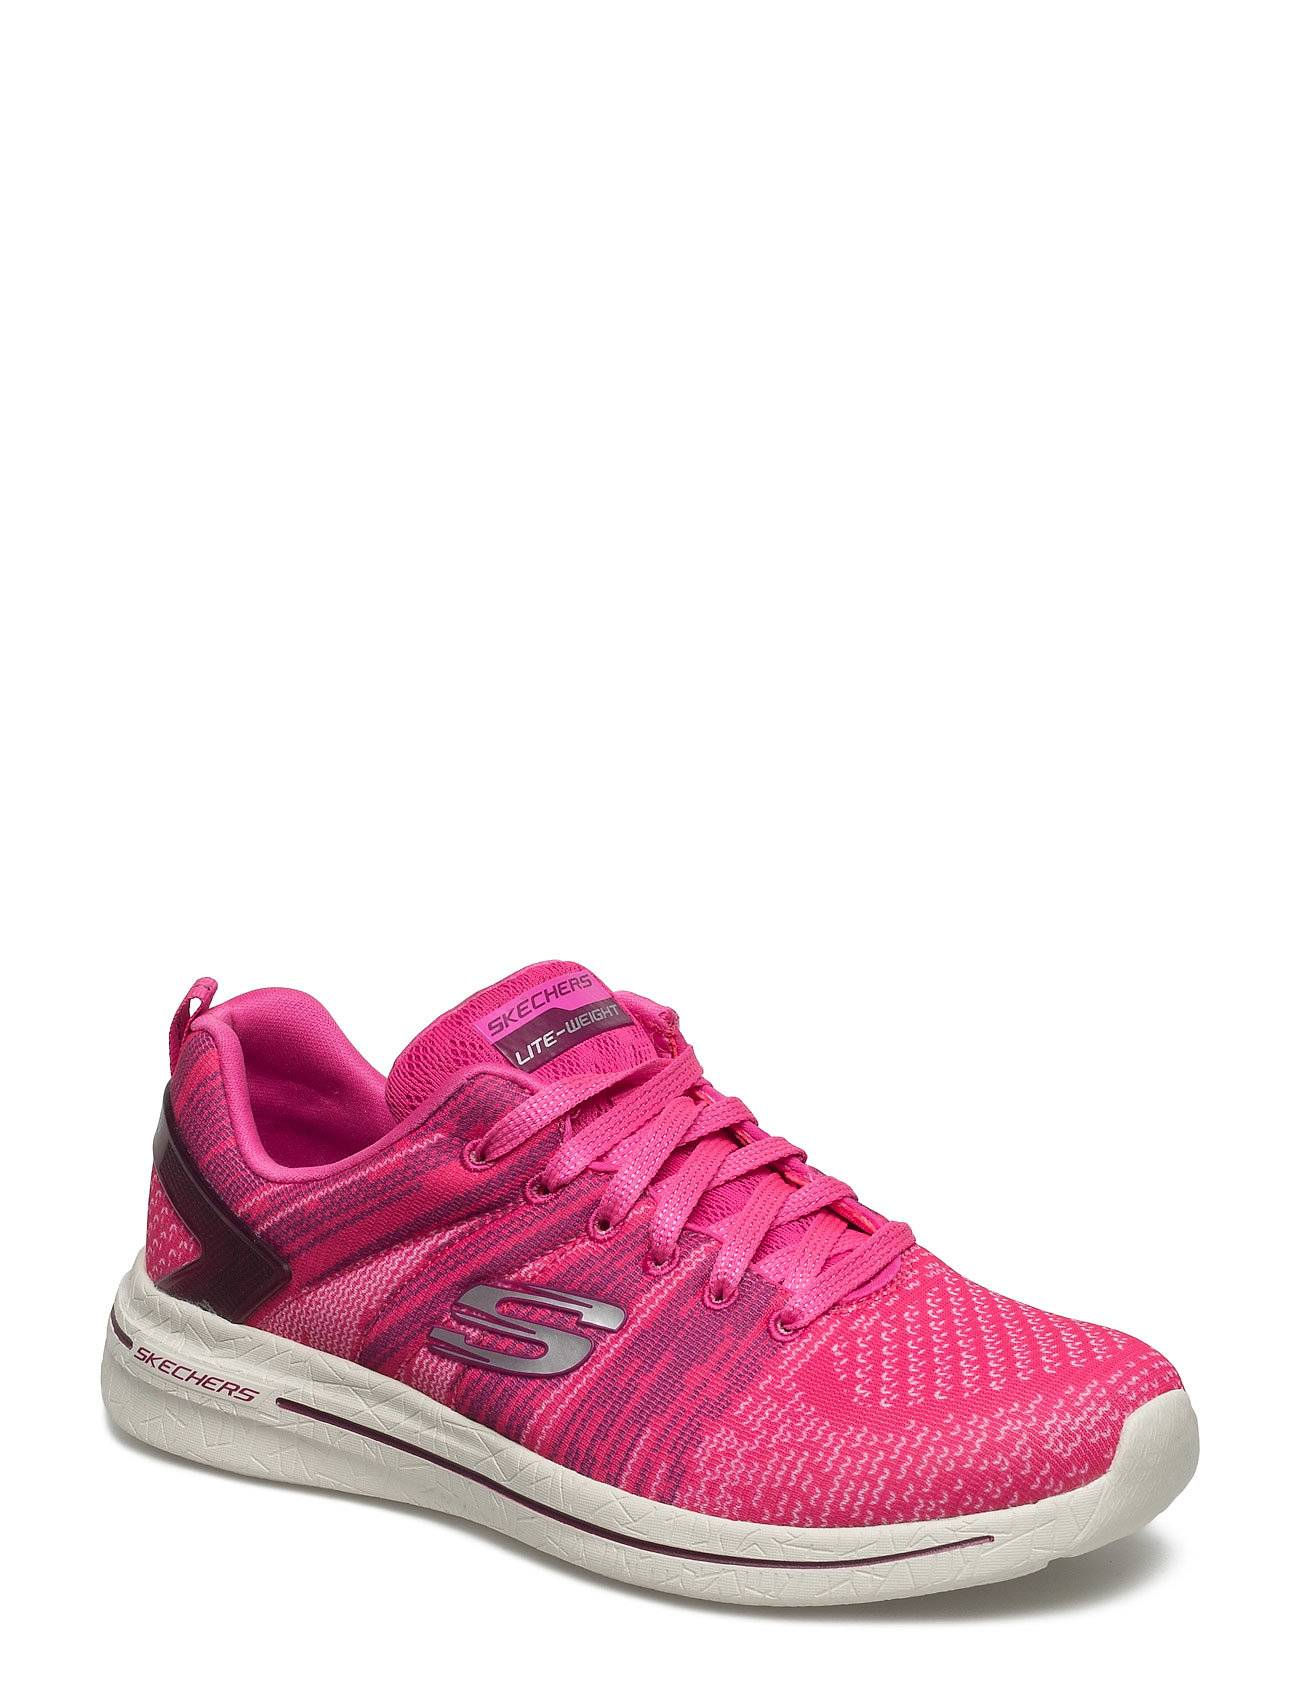 Skechers Womans Burst 2.0